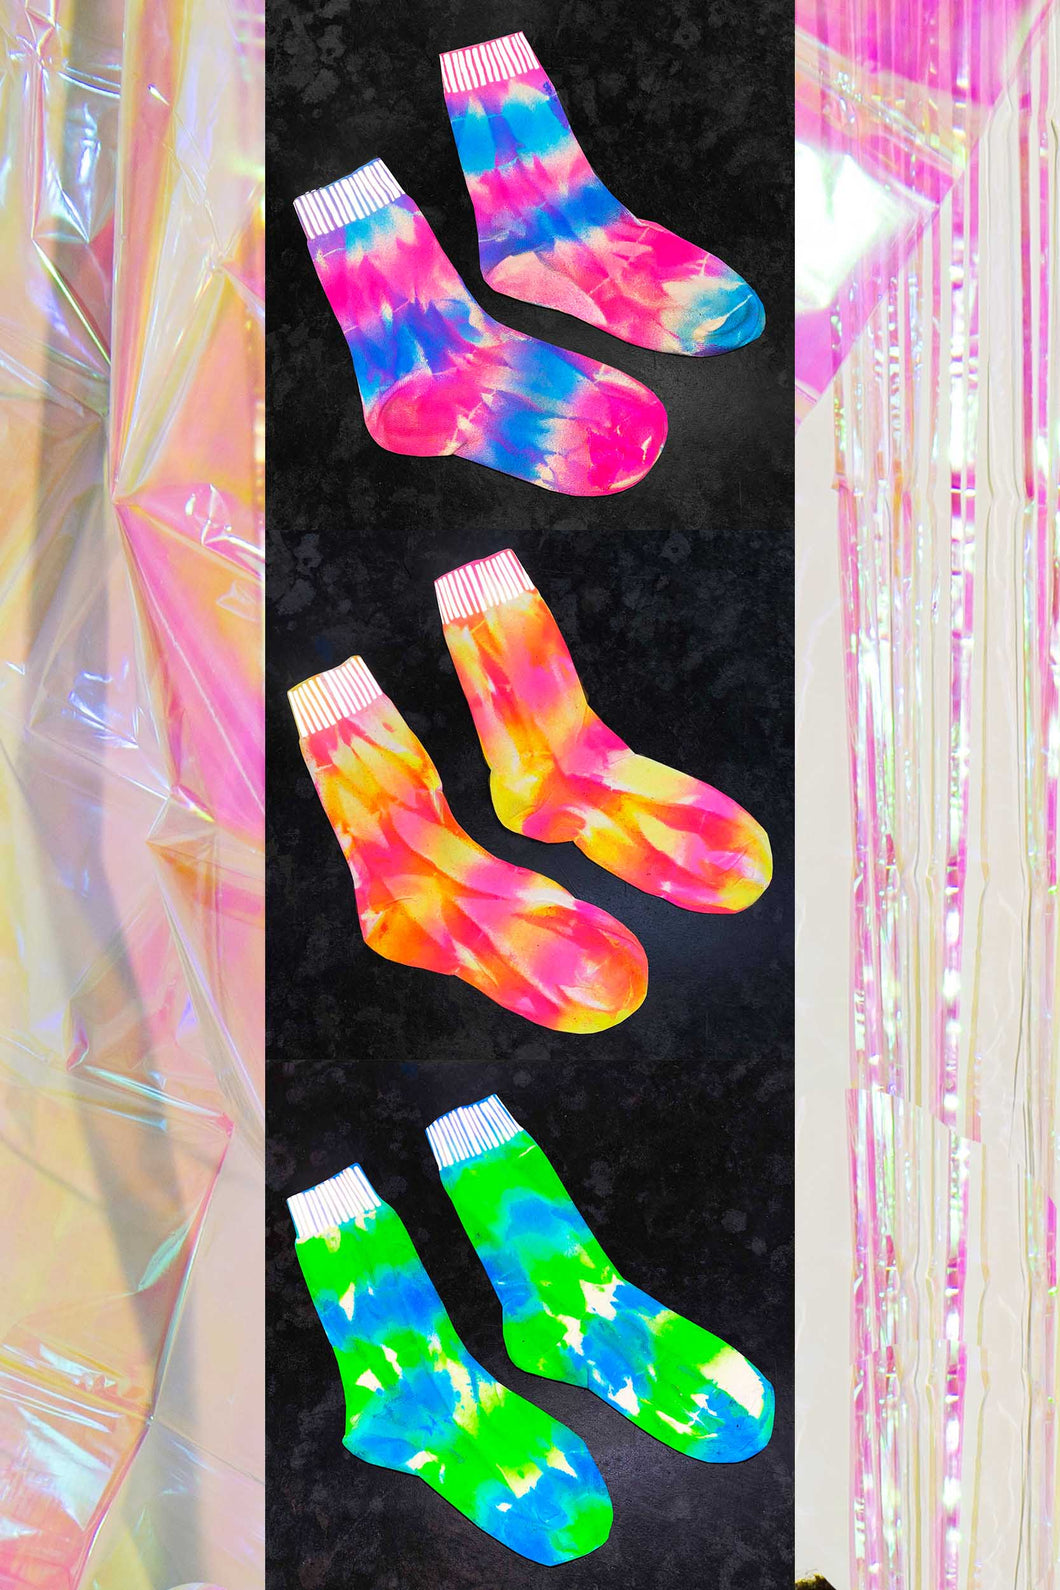 Mix pack of 3 - Tie-Dye Reflective Hemp Socks